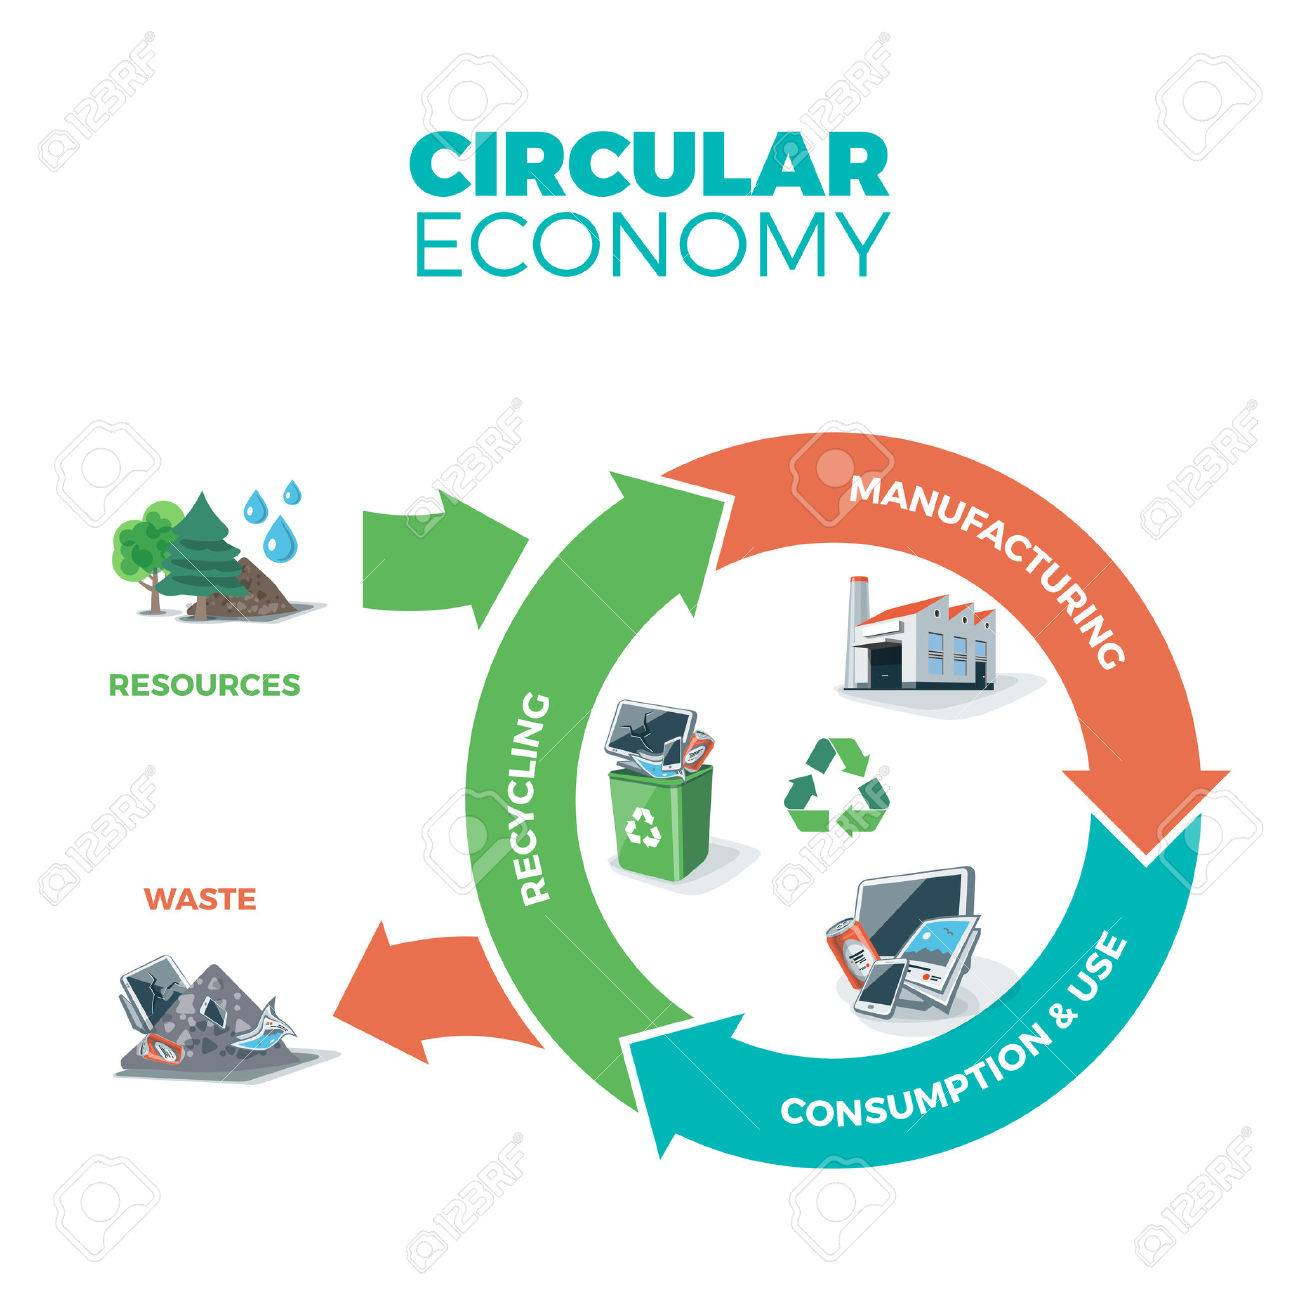 illustration of circular economy showing product and material flow on white background with arrows. Product life cycle. Natural resources are taken to manufacturing. After usage product is recycled or dumped. Waste recycling management concept. - 55839795